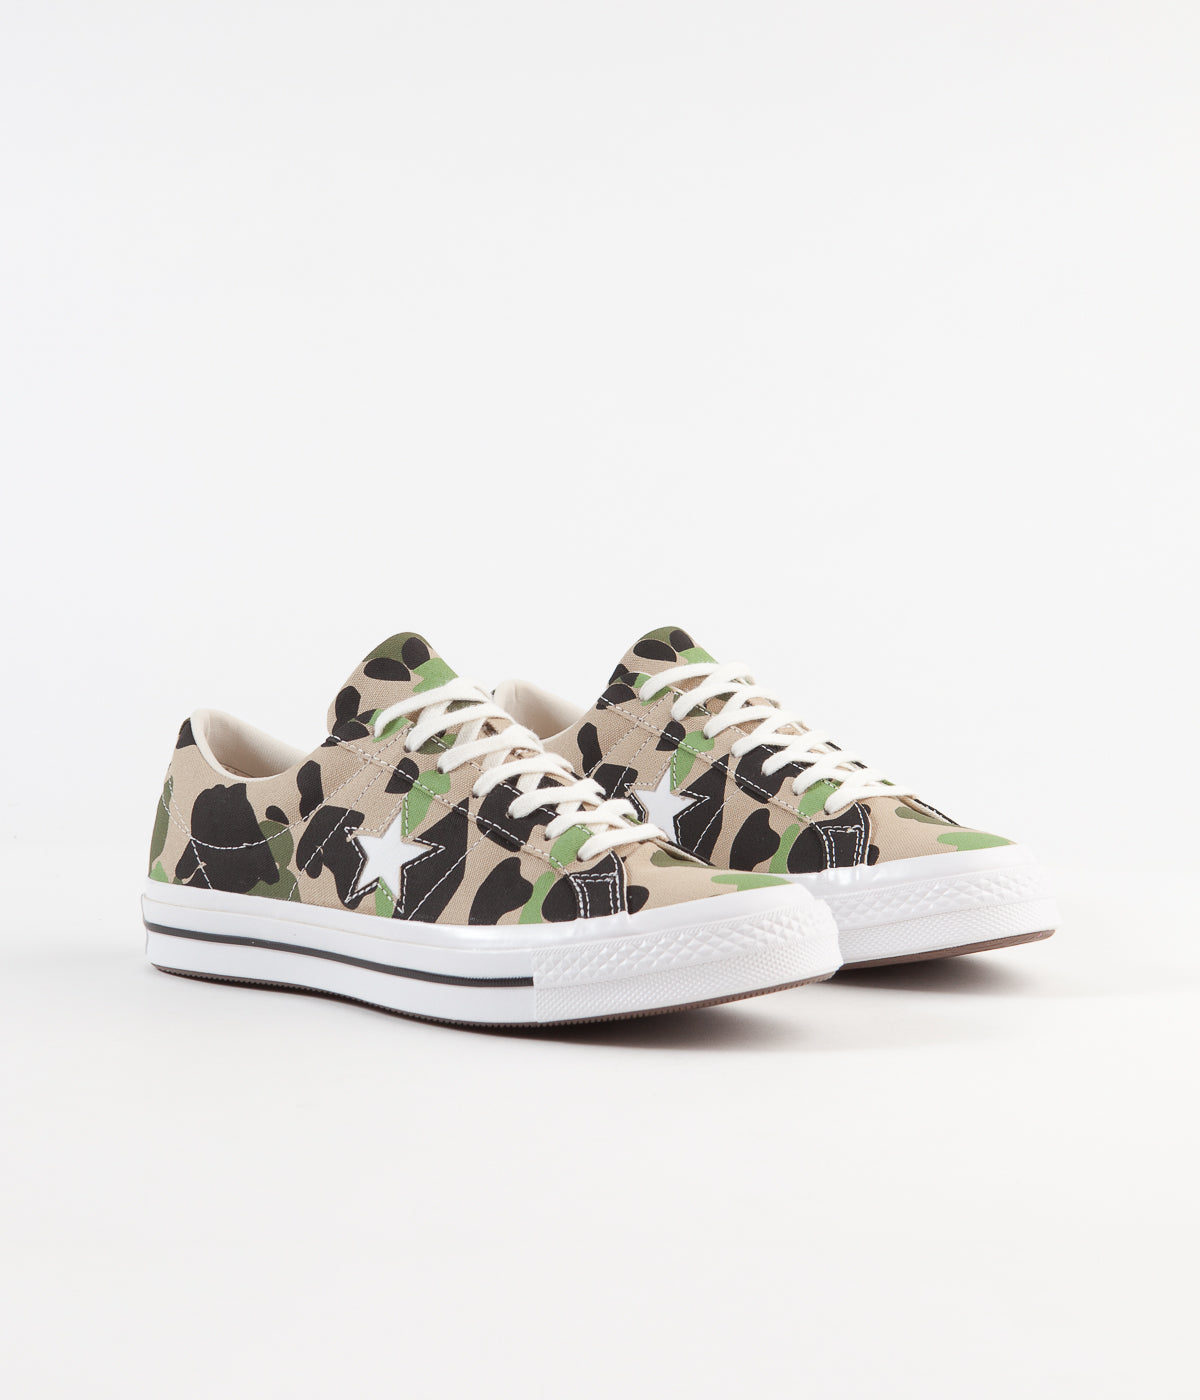 Converse One Star Ox Archive Print Remixed Shoes - Candied Ginger / Piquant Green